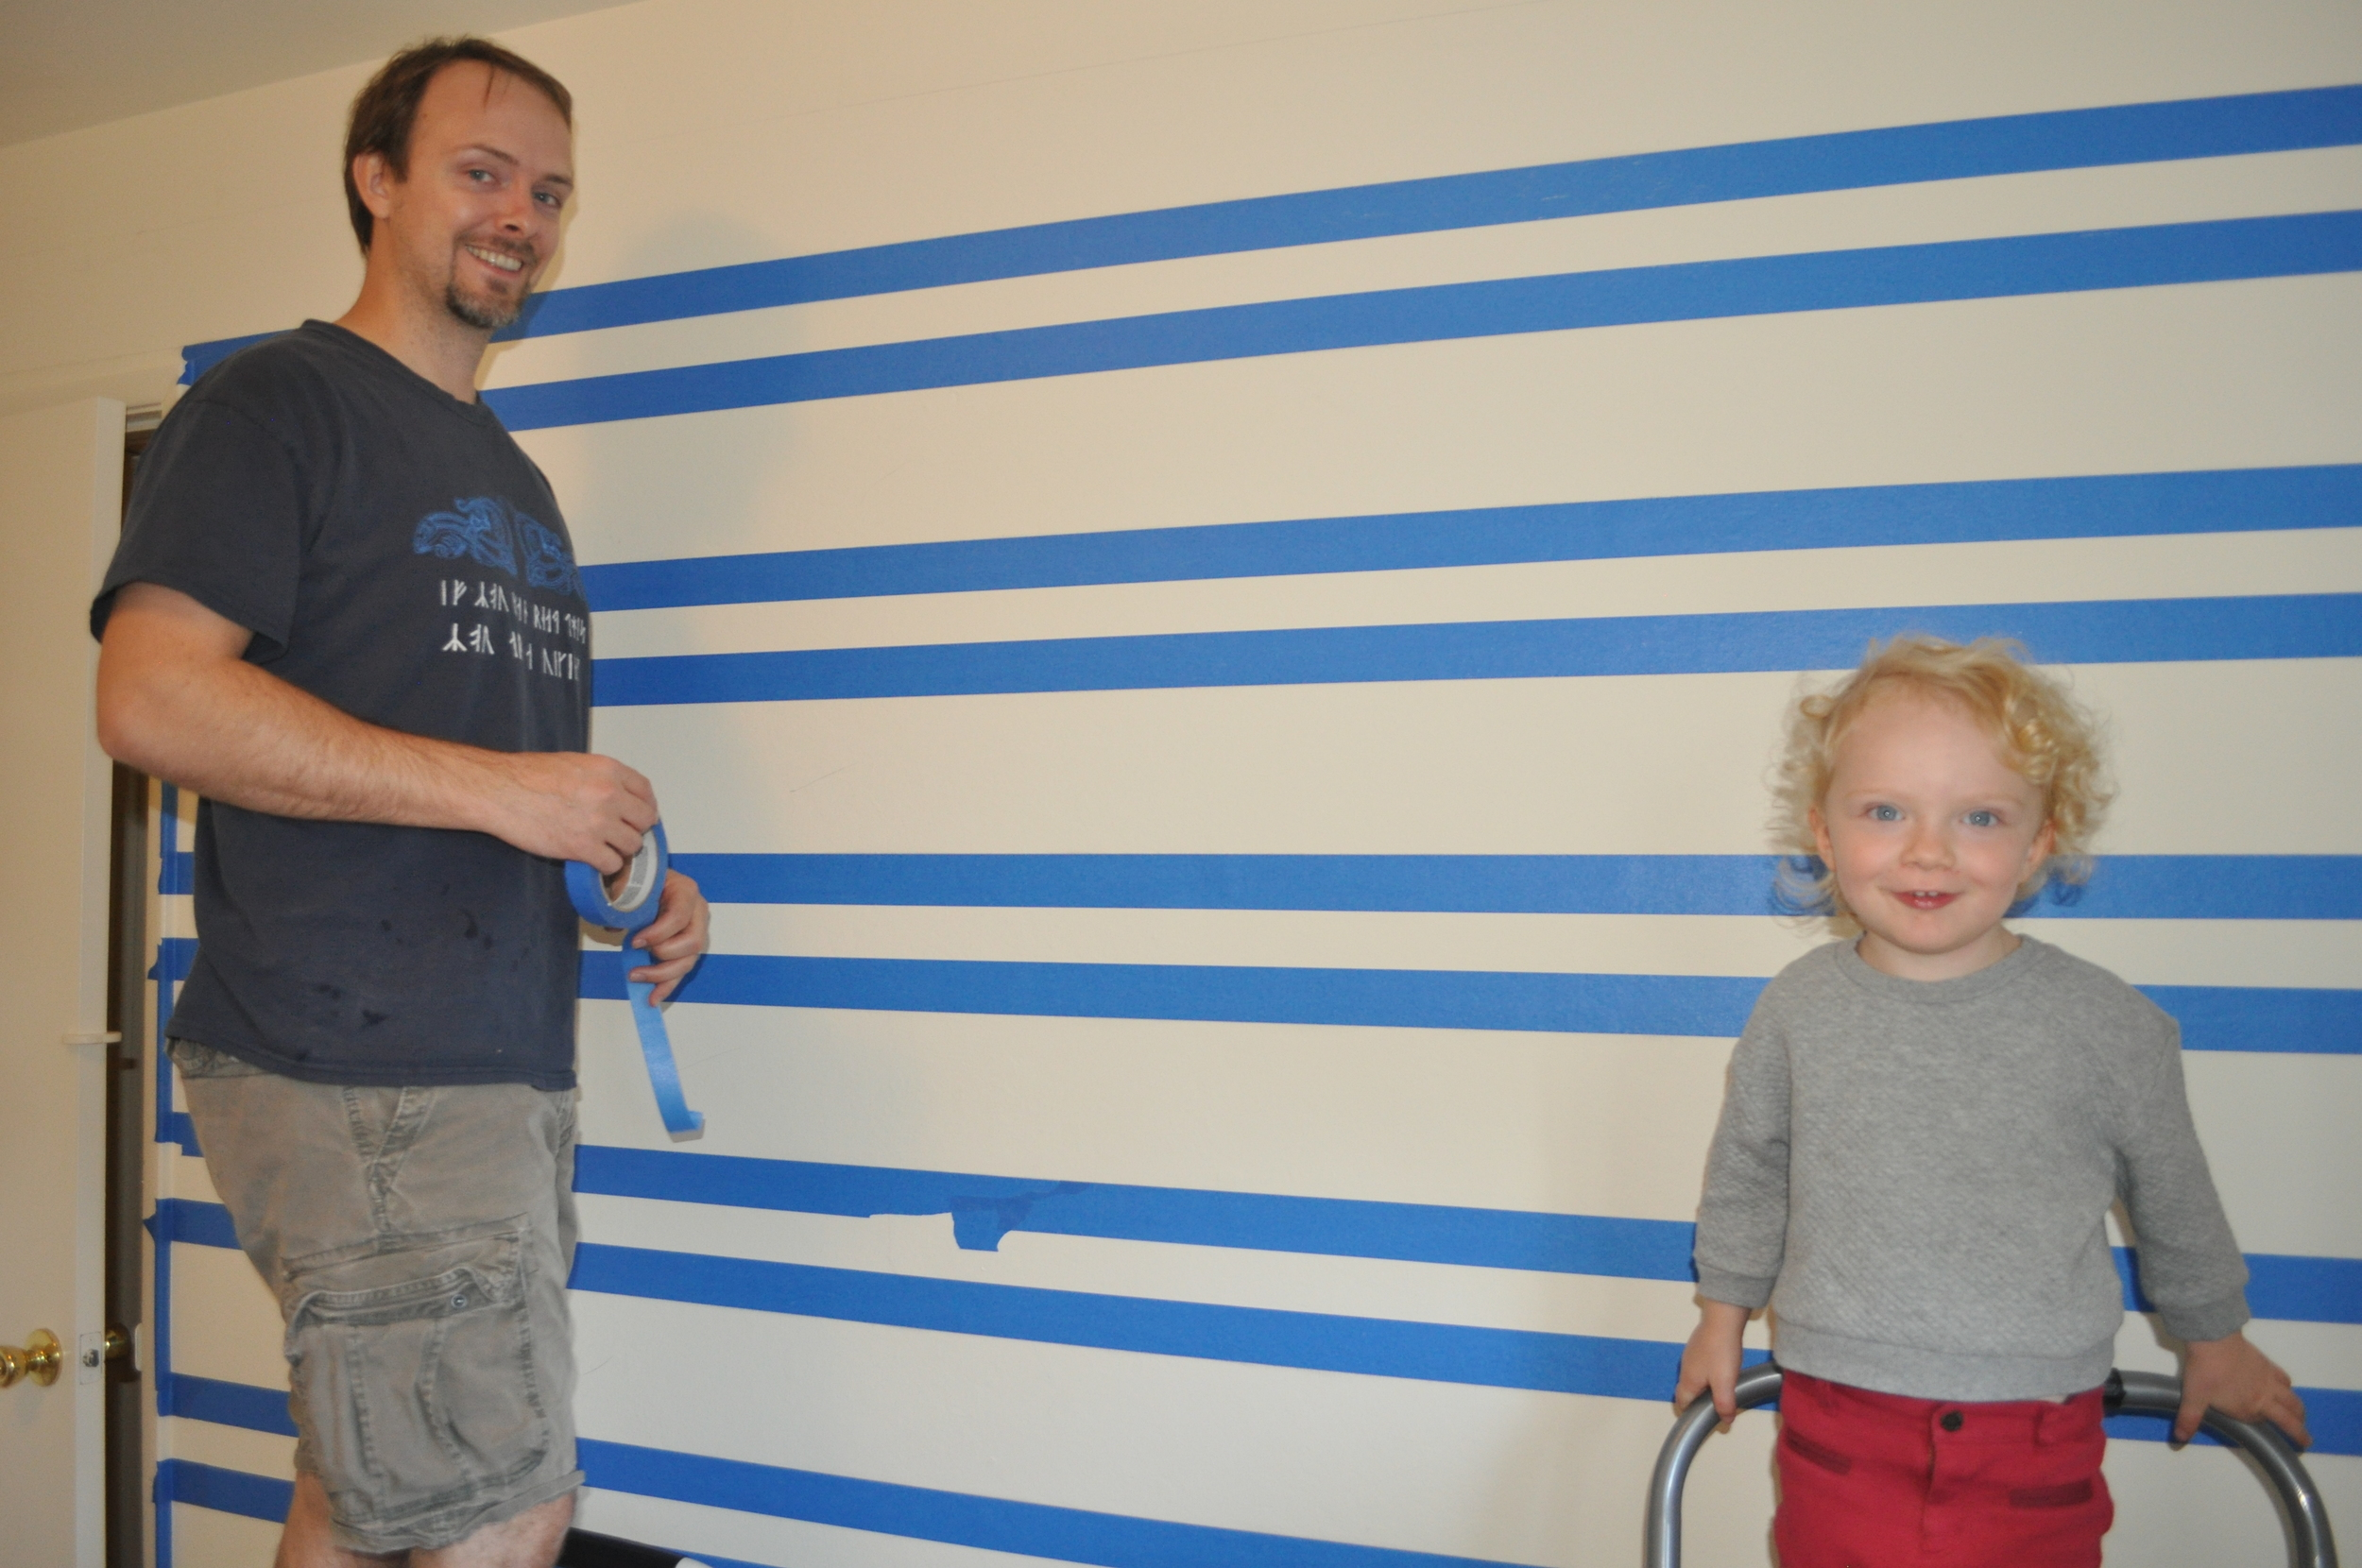 Toddler G getting in on the taping action!